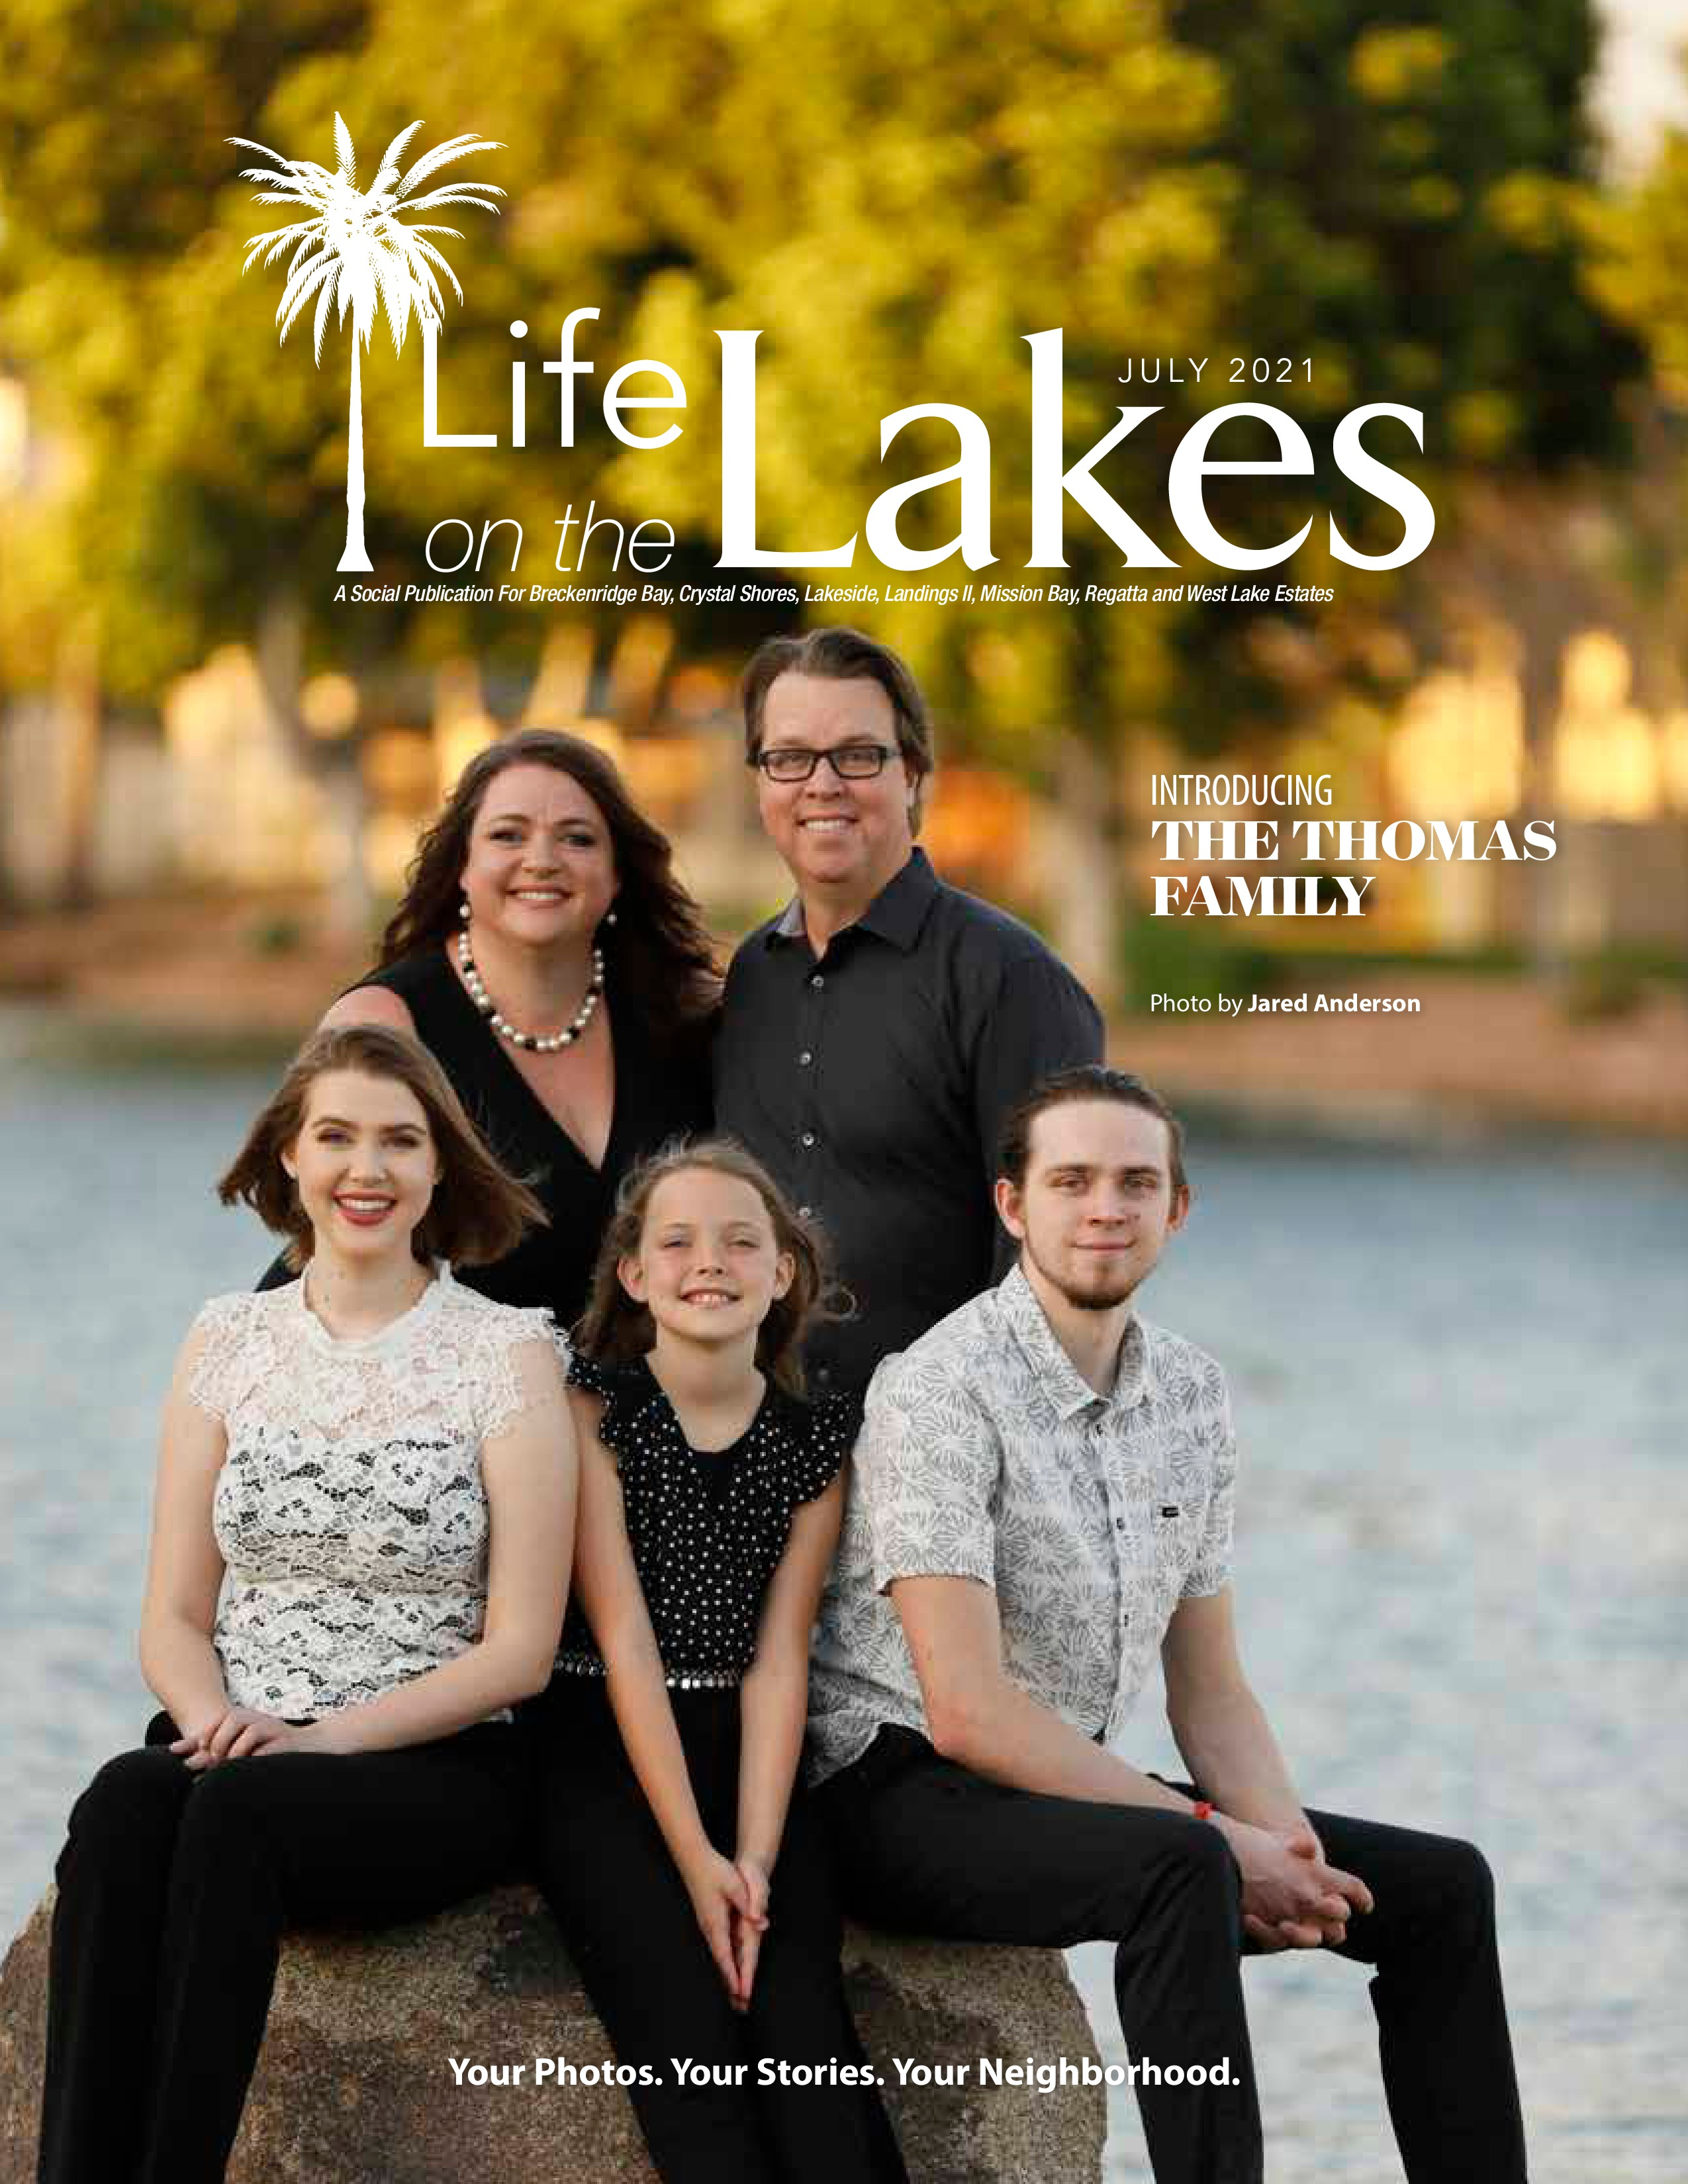 Life on the Lakes 2021-07-01